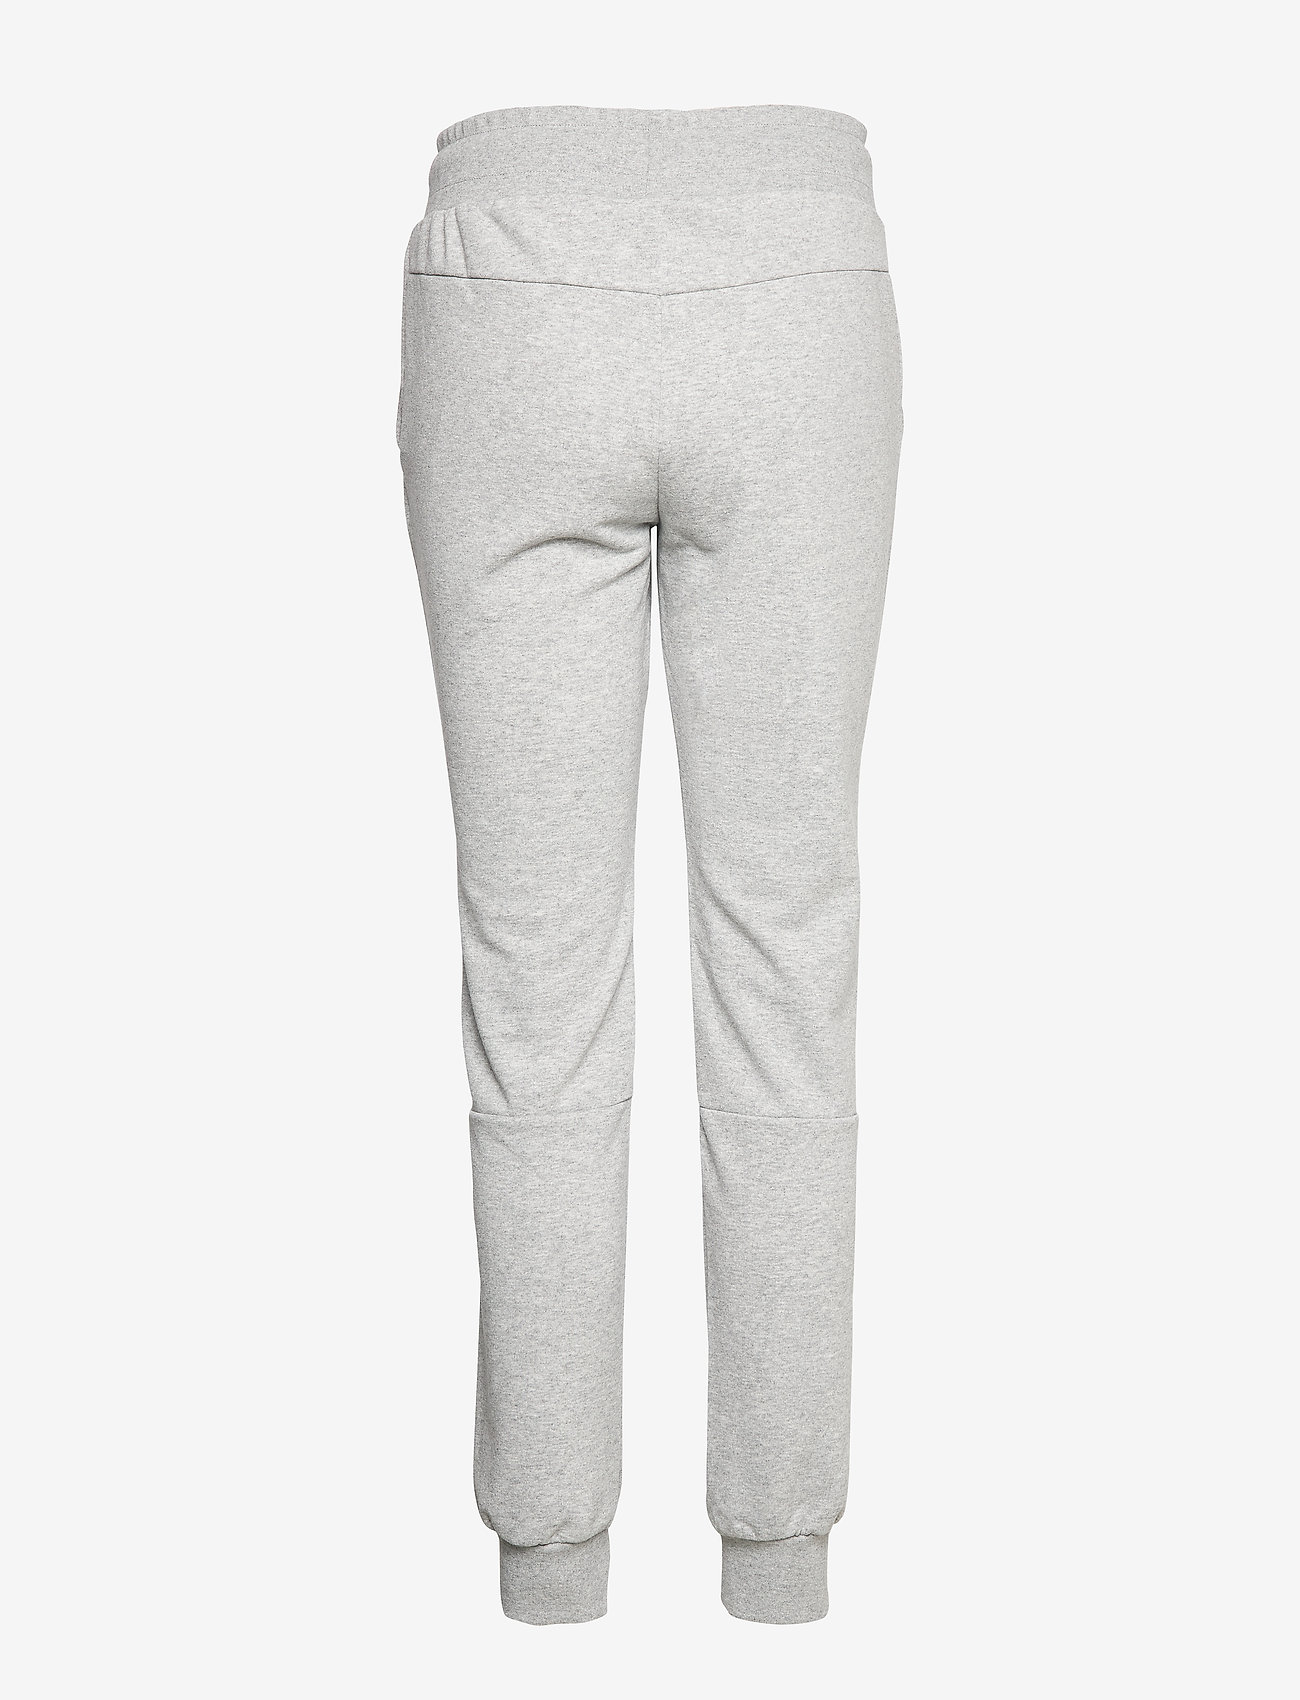 Hummel - hmlNONI REGULAR PANTS - bukser - grey melange - 1